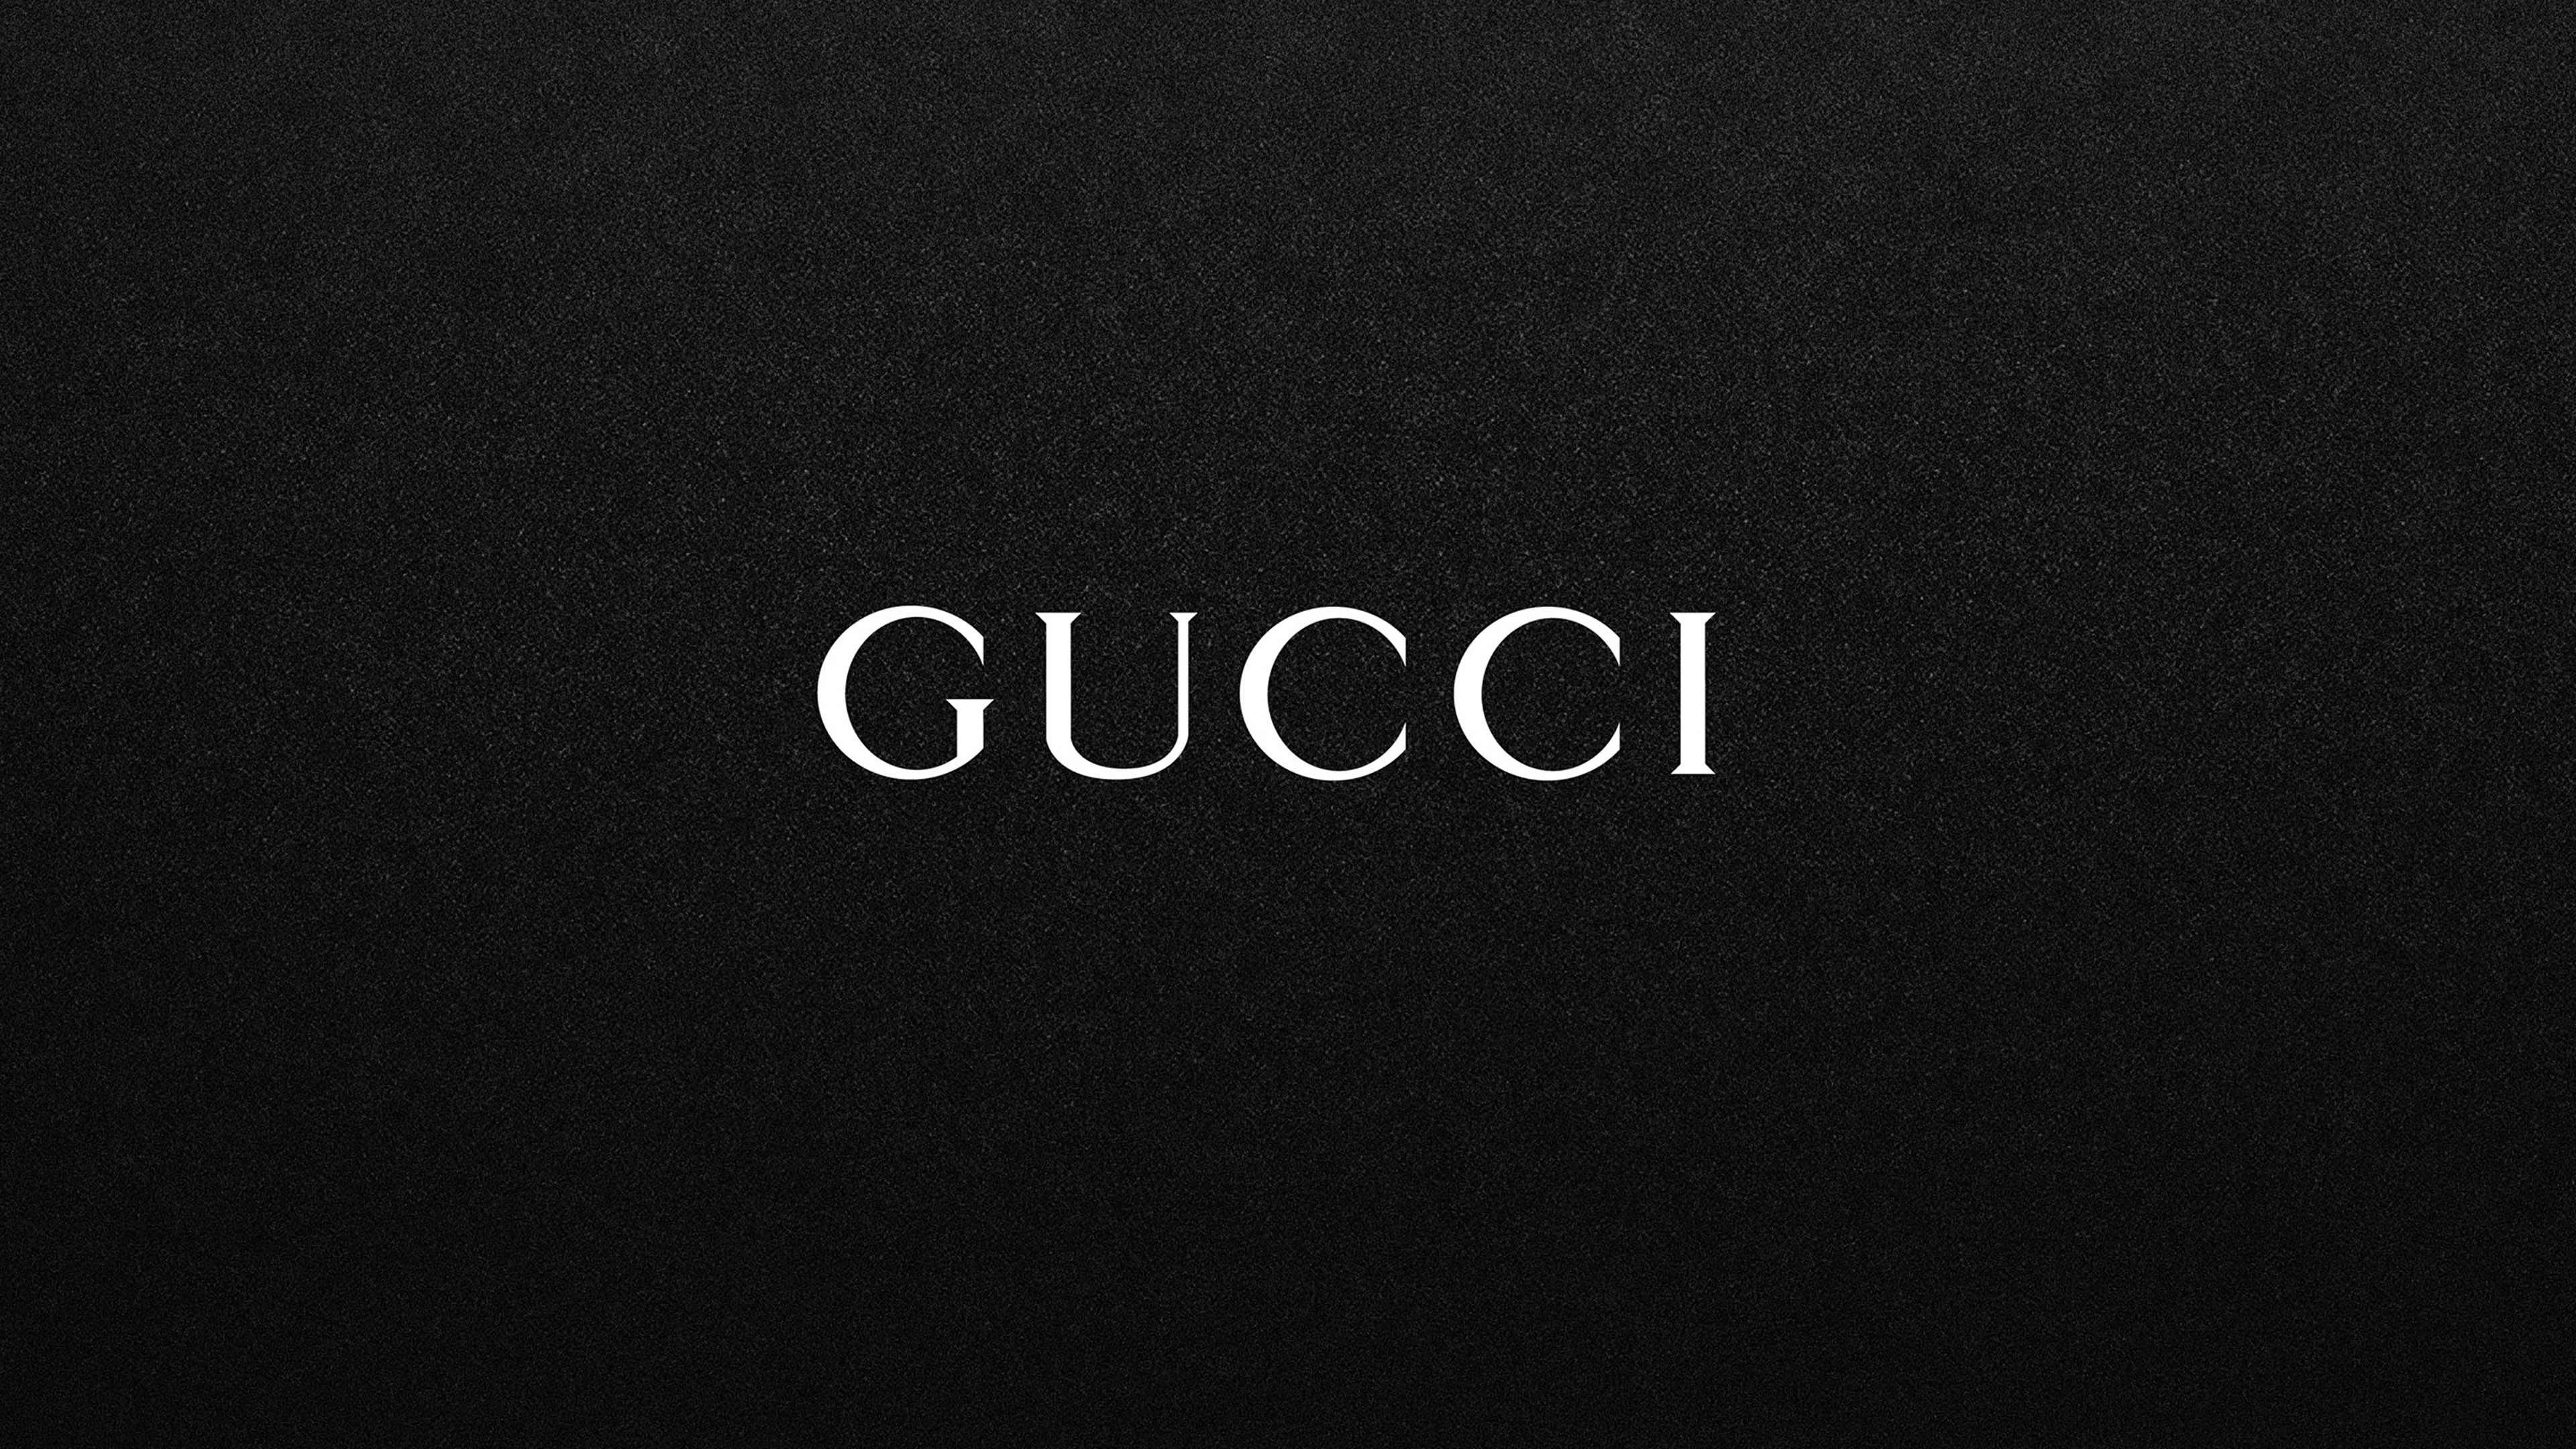 Gucci White Logo On Black Background Download Tablet 3840x2160